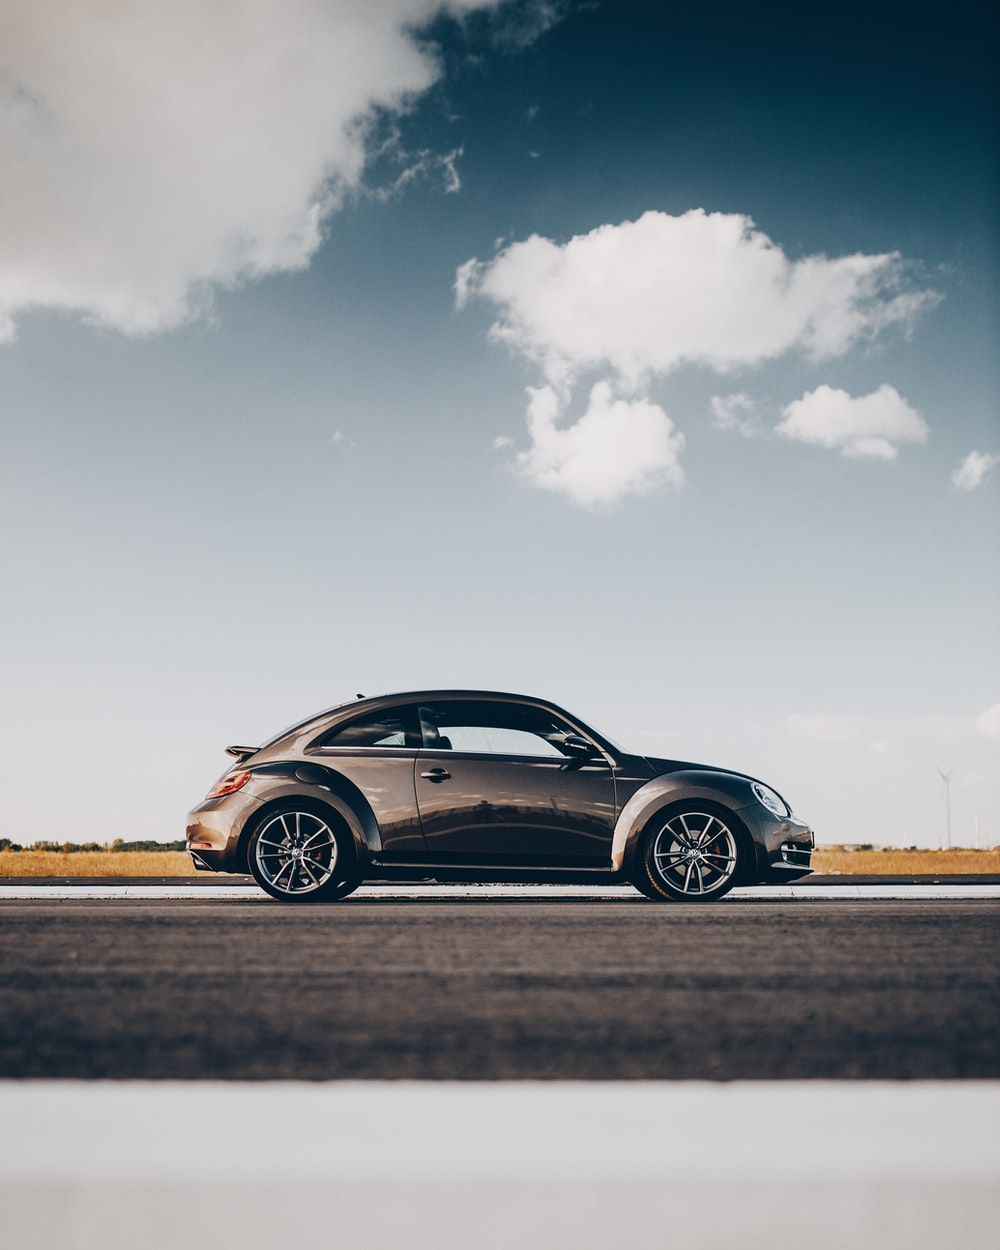 black coupe on brown field under white clouds and blue sky during daytime